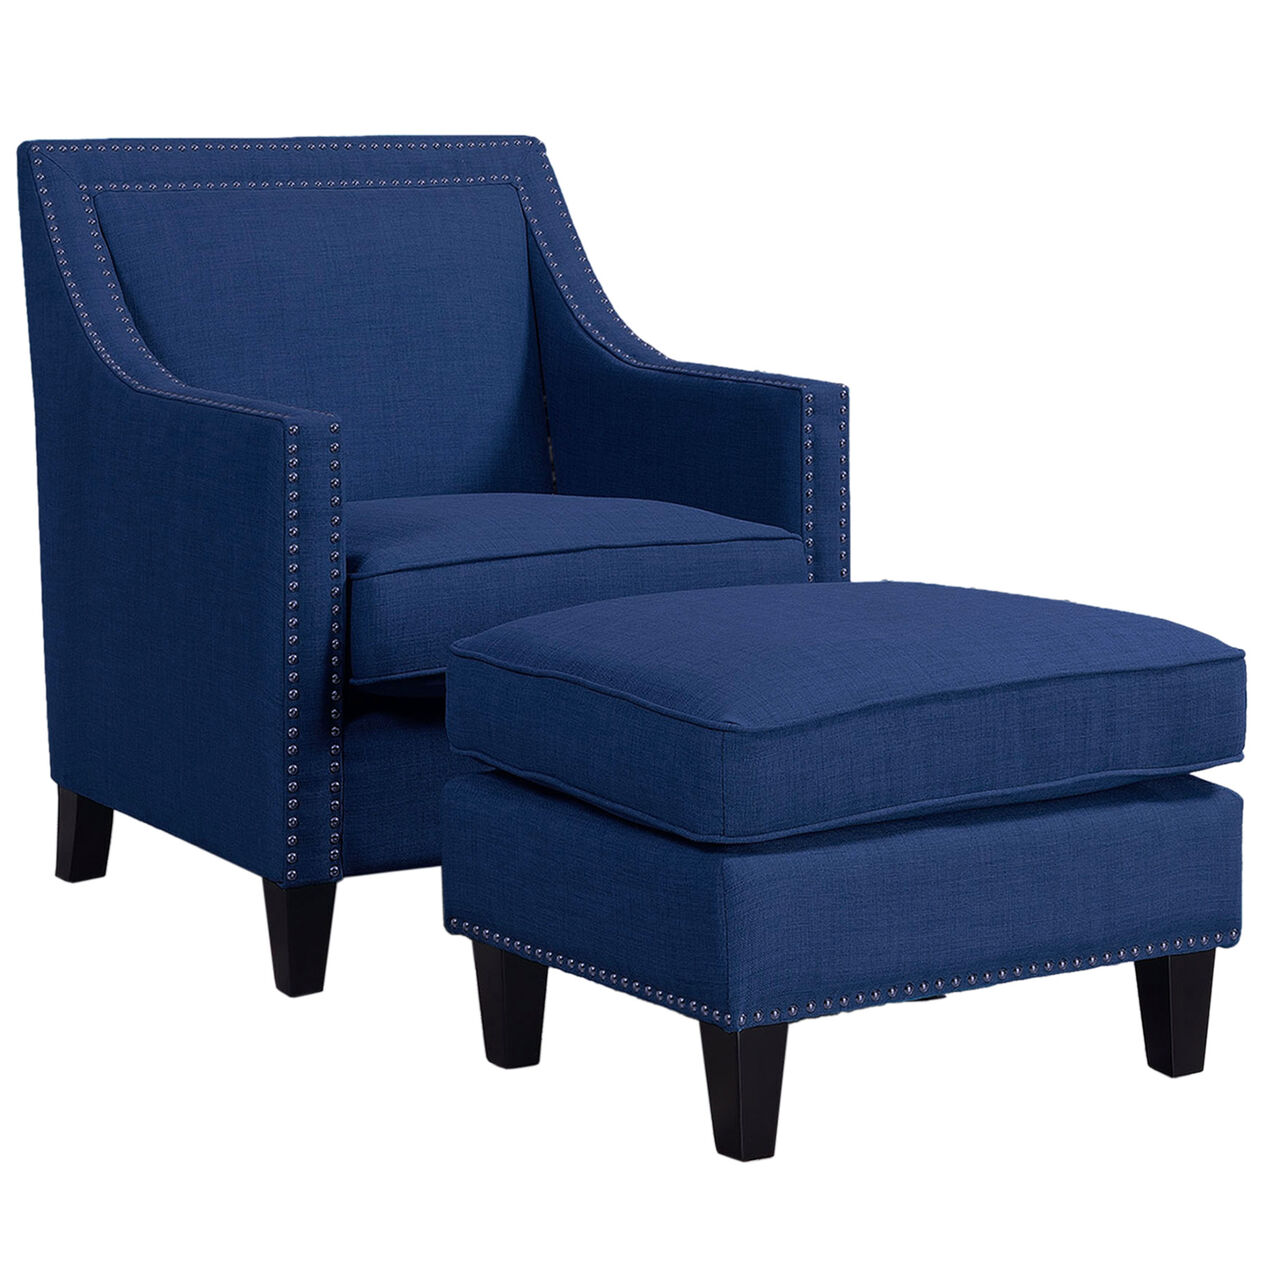 Blue Erica Chair With Stud Detail